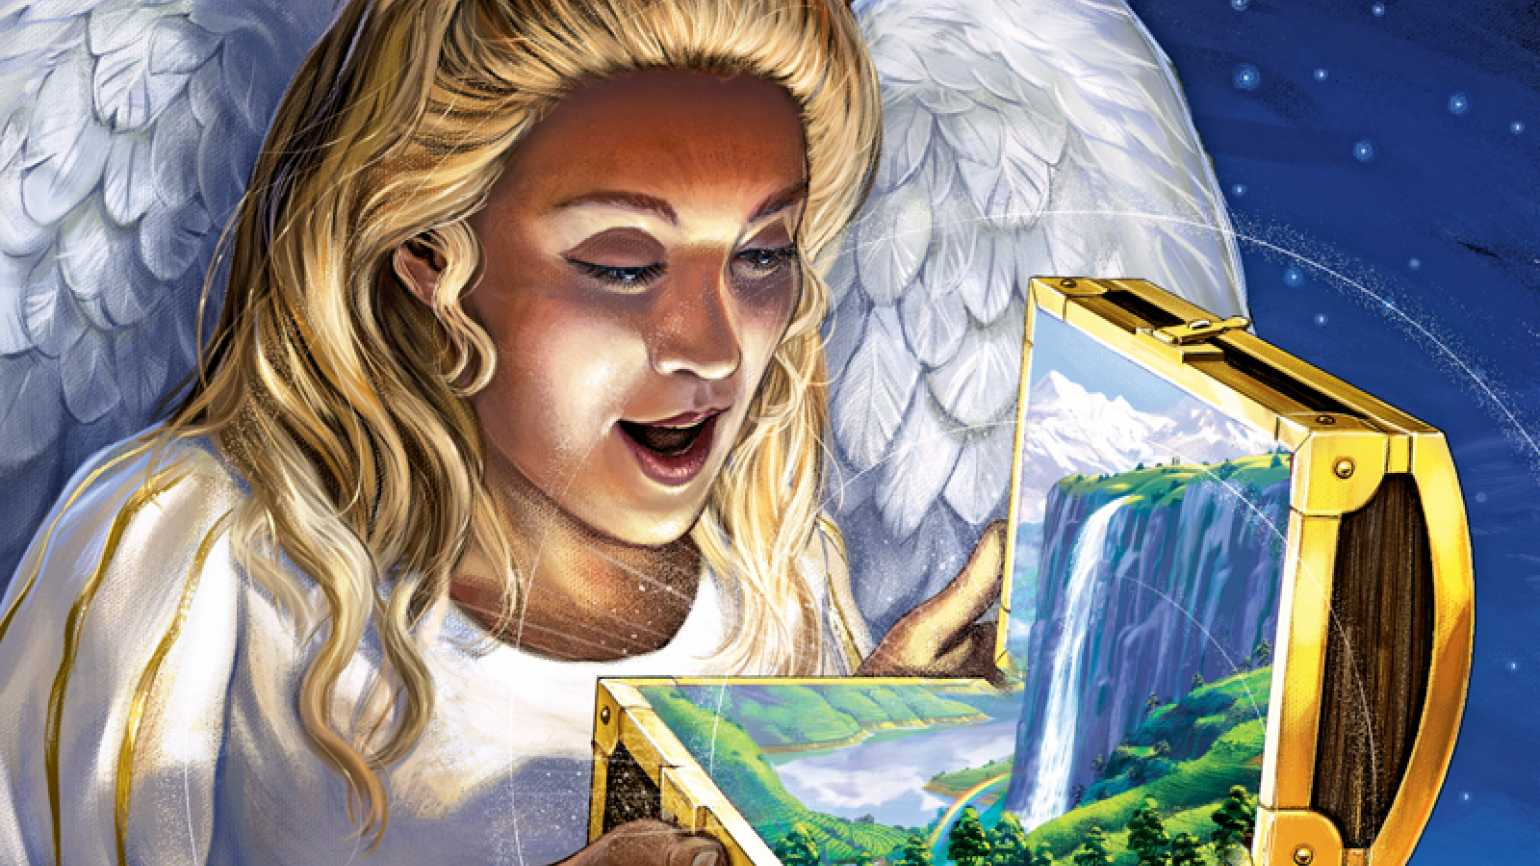 An angel is delighted by opening a small treasure chest that holds a waterfall.